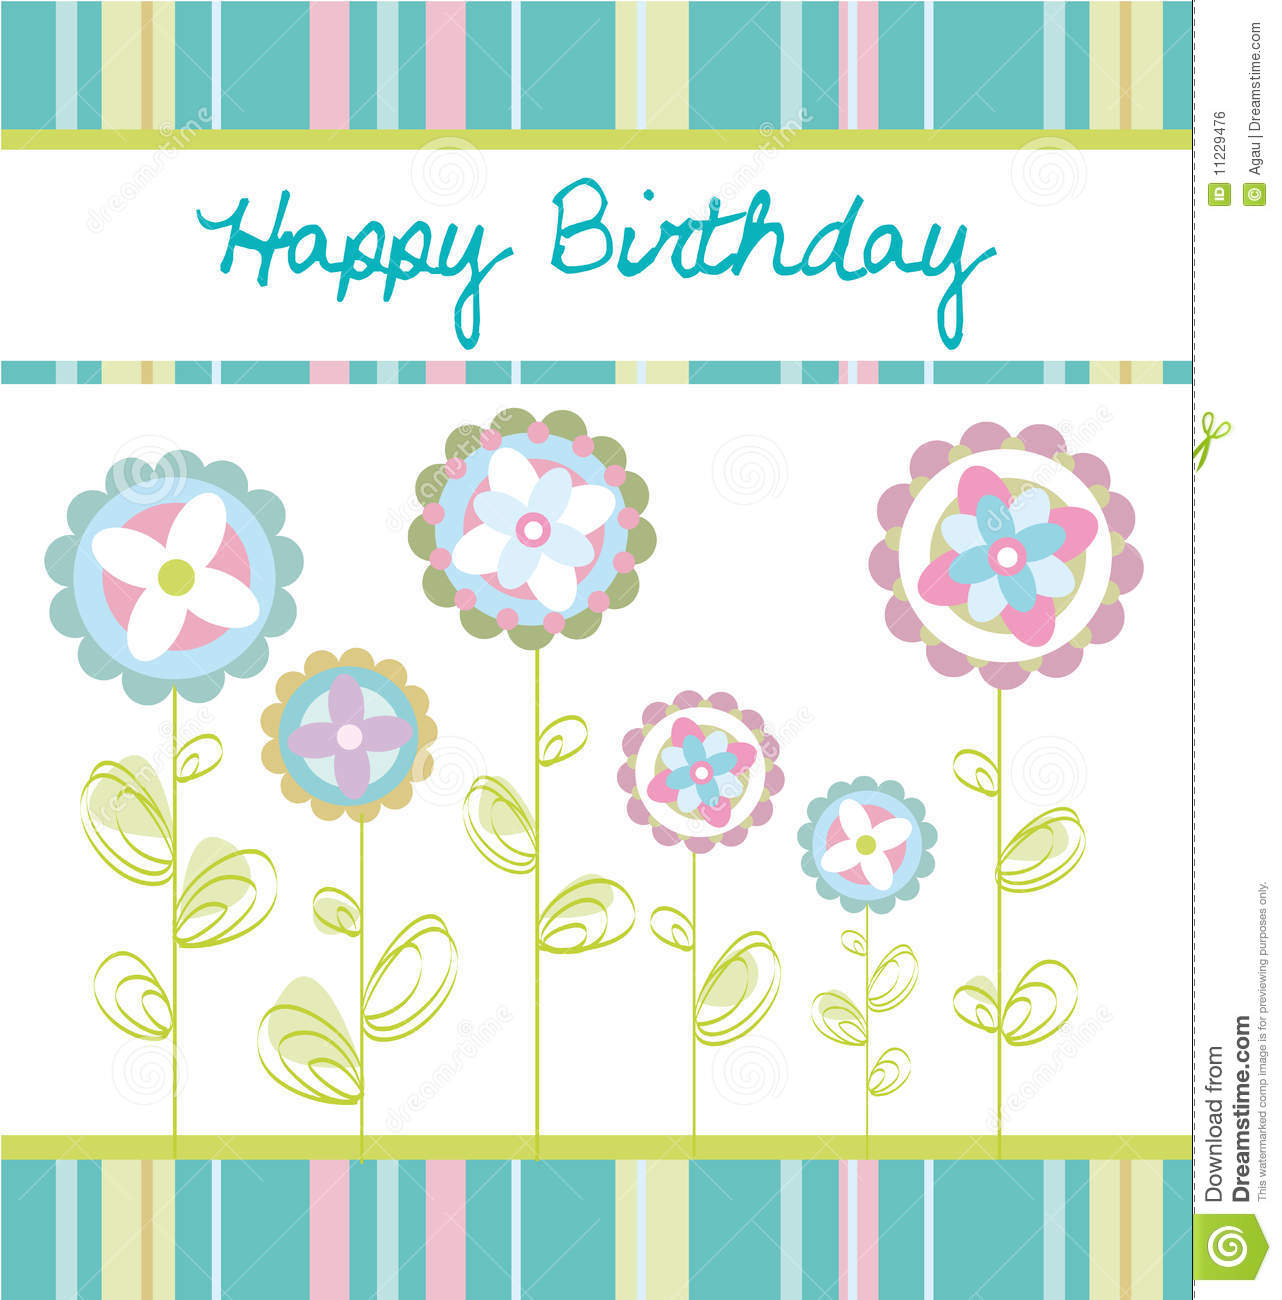 Birthday Card Stock Vector. Image Of Flowers, Love